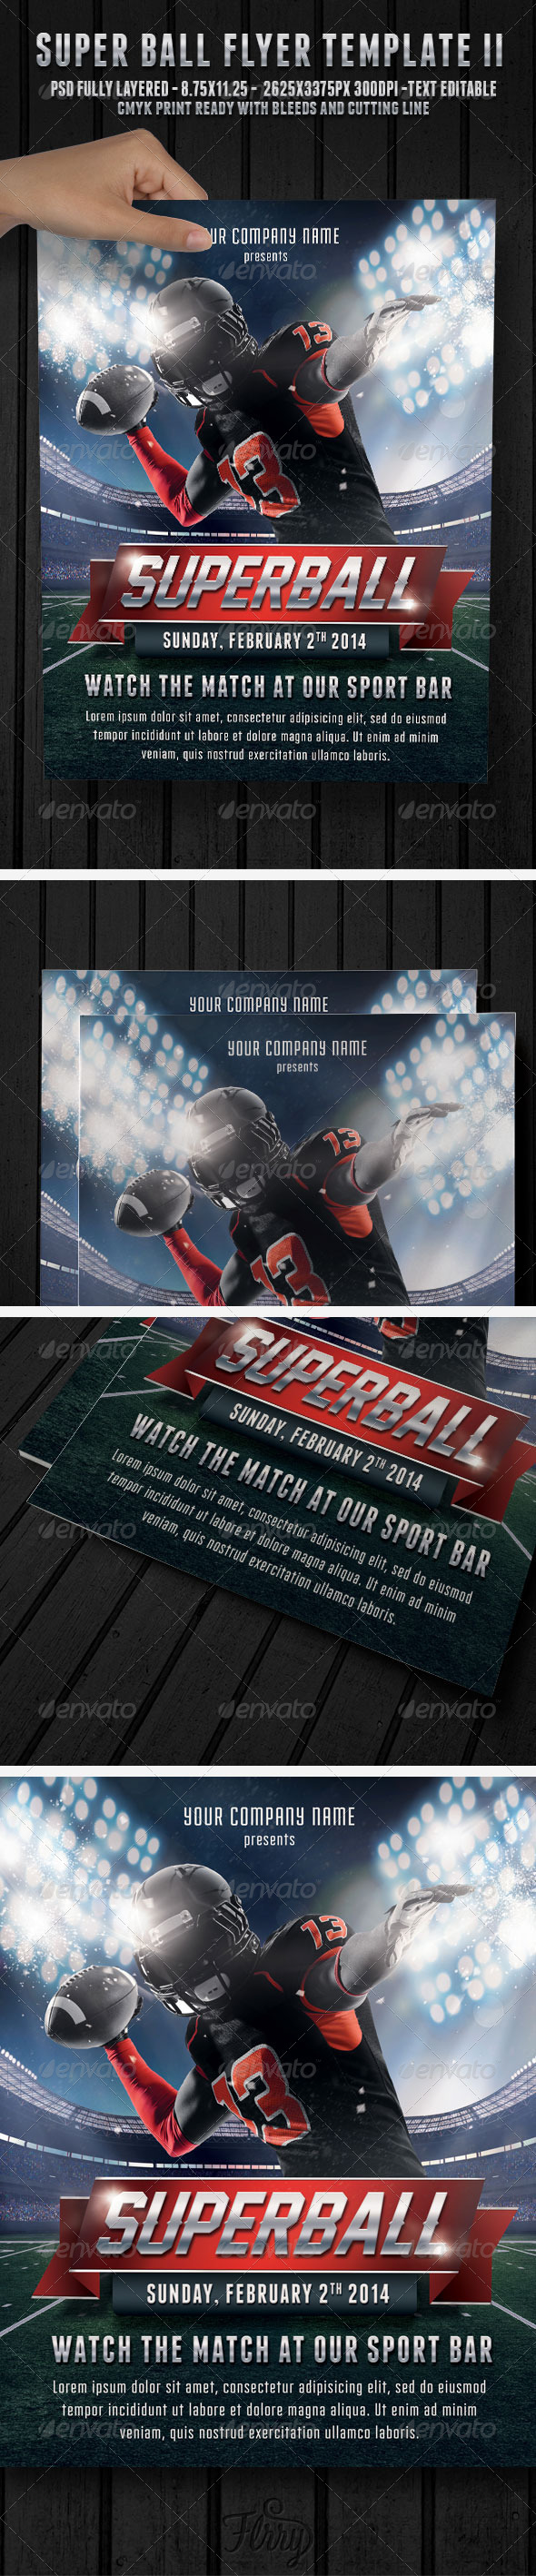 GraphicRiver Super Ball Football 2 Flyer Template 6608600